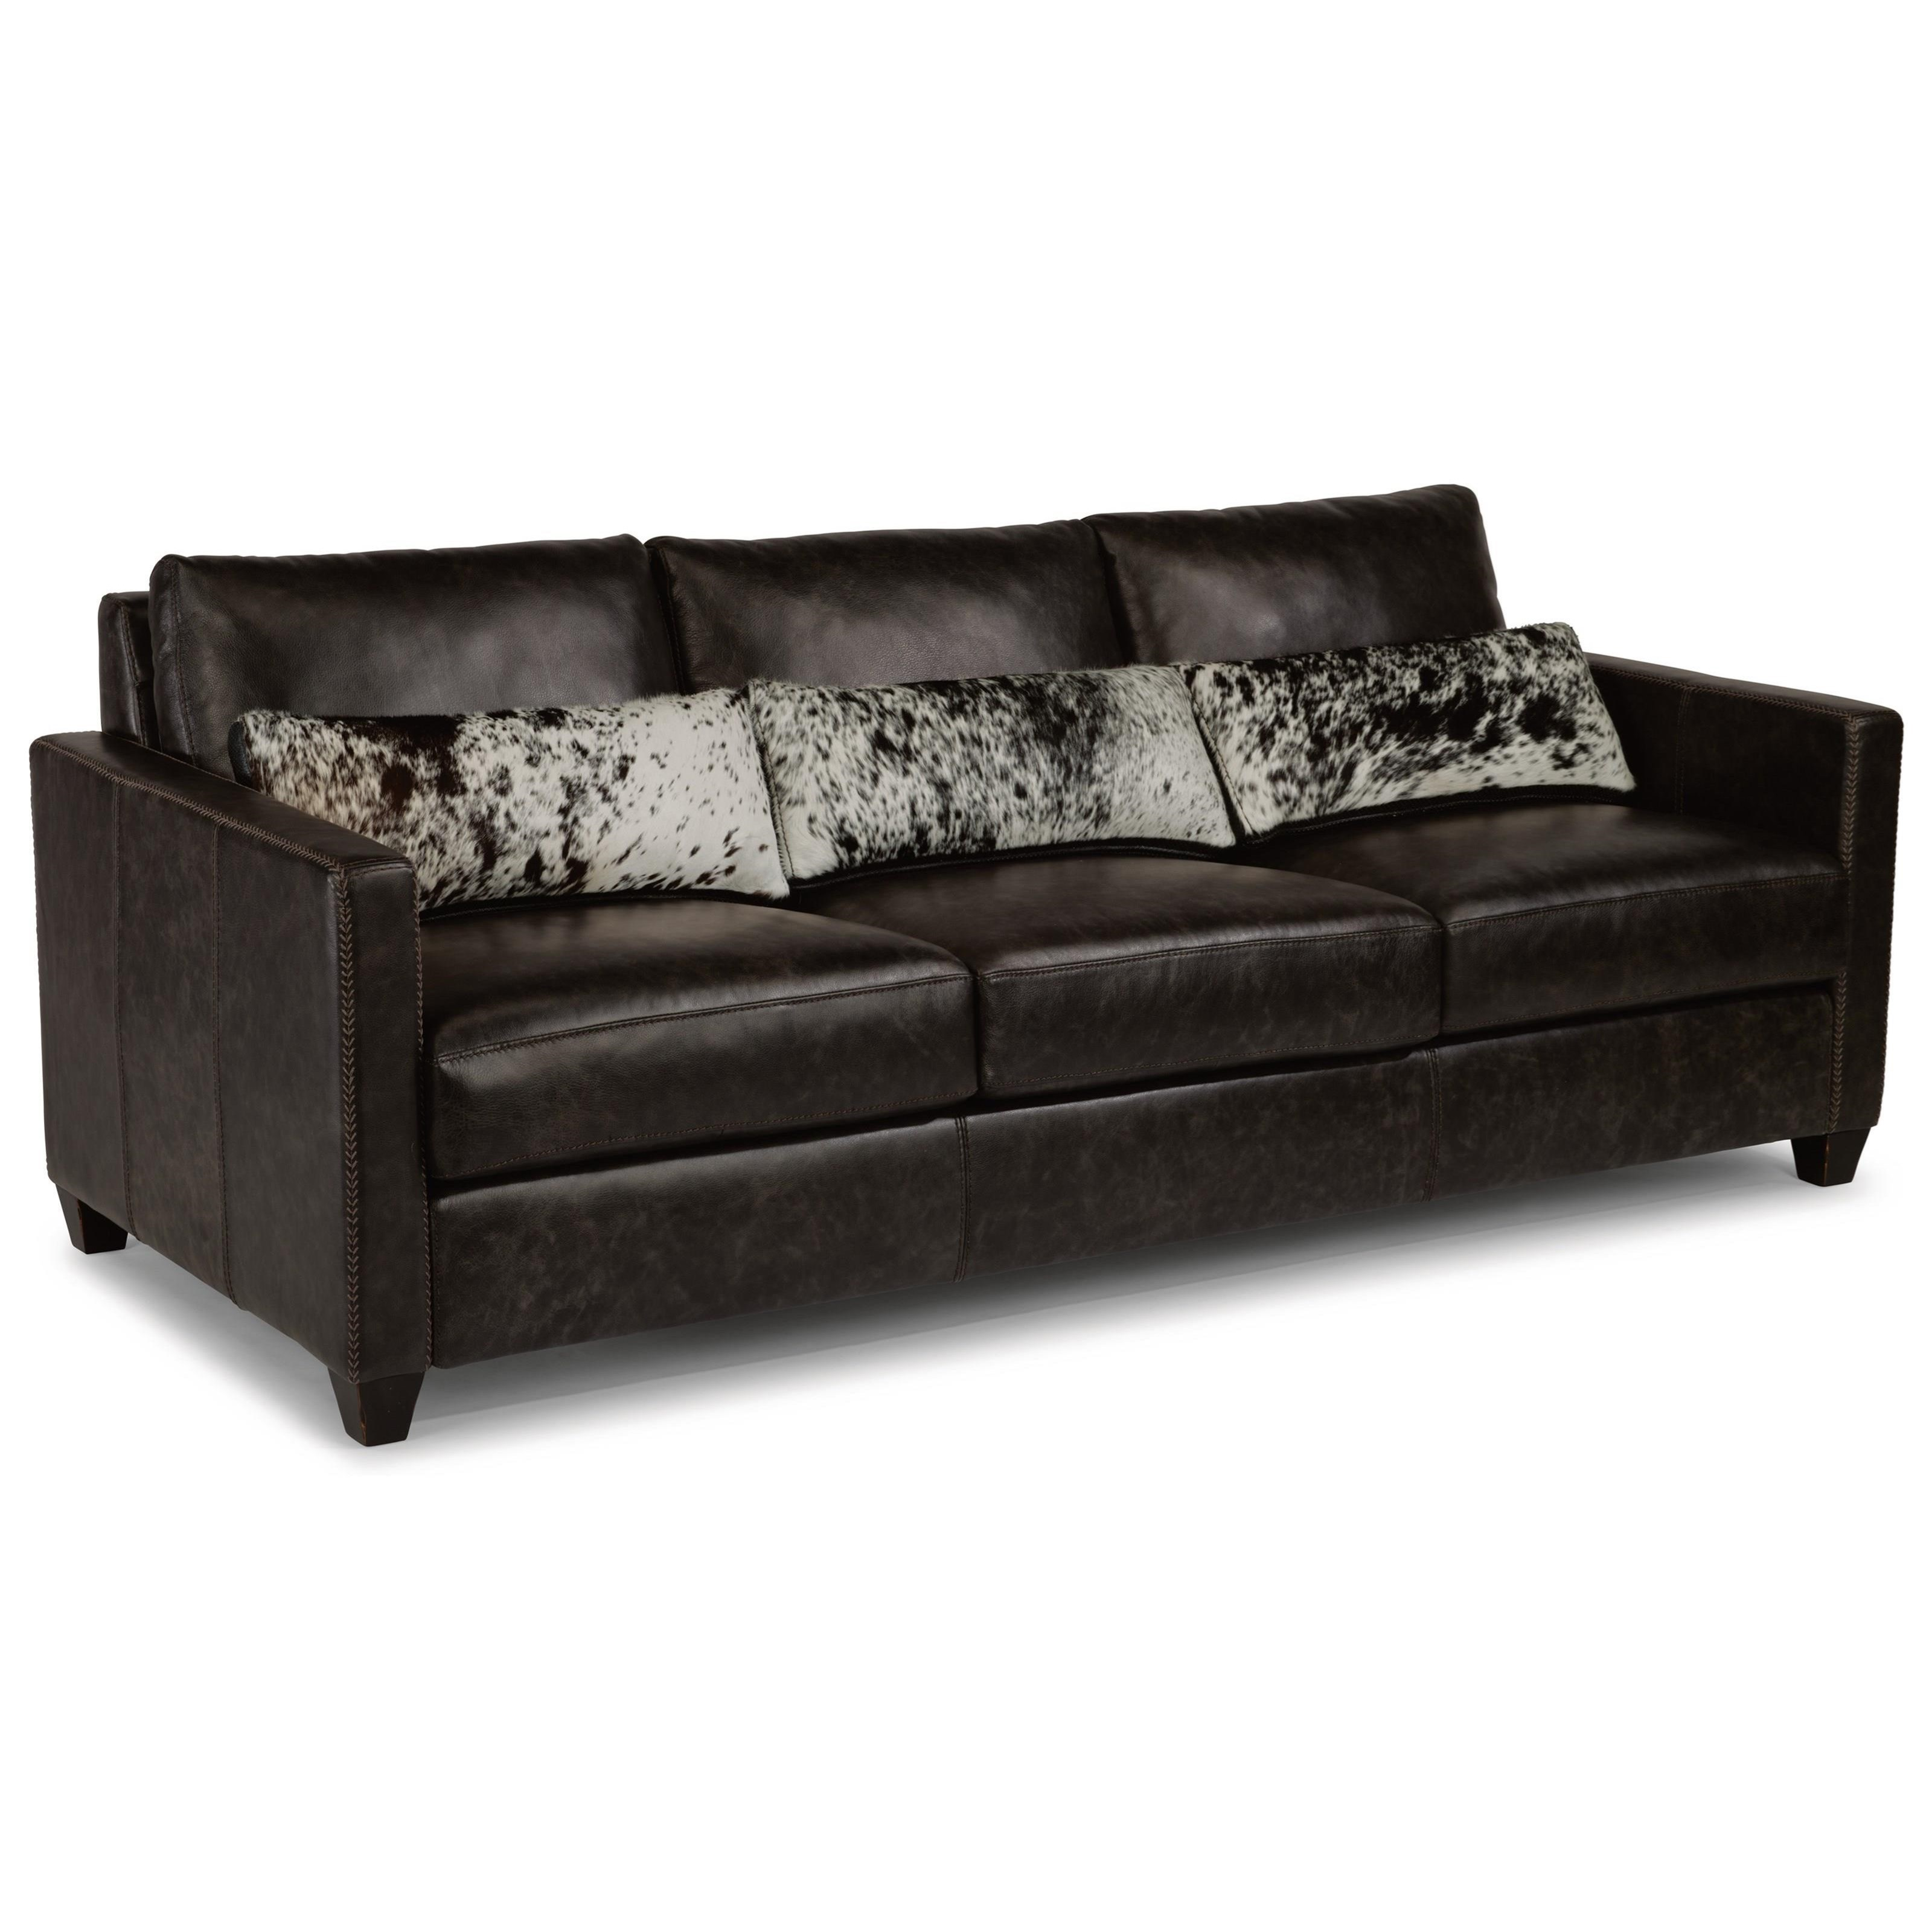 Urban Sofa Nederland Flexsteel Latitudes Roscoe Urban Rustic Sofa With Hair On Hide